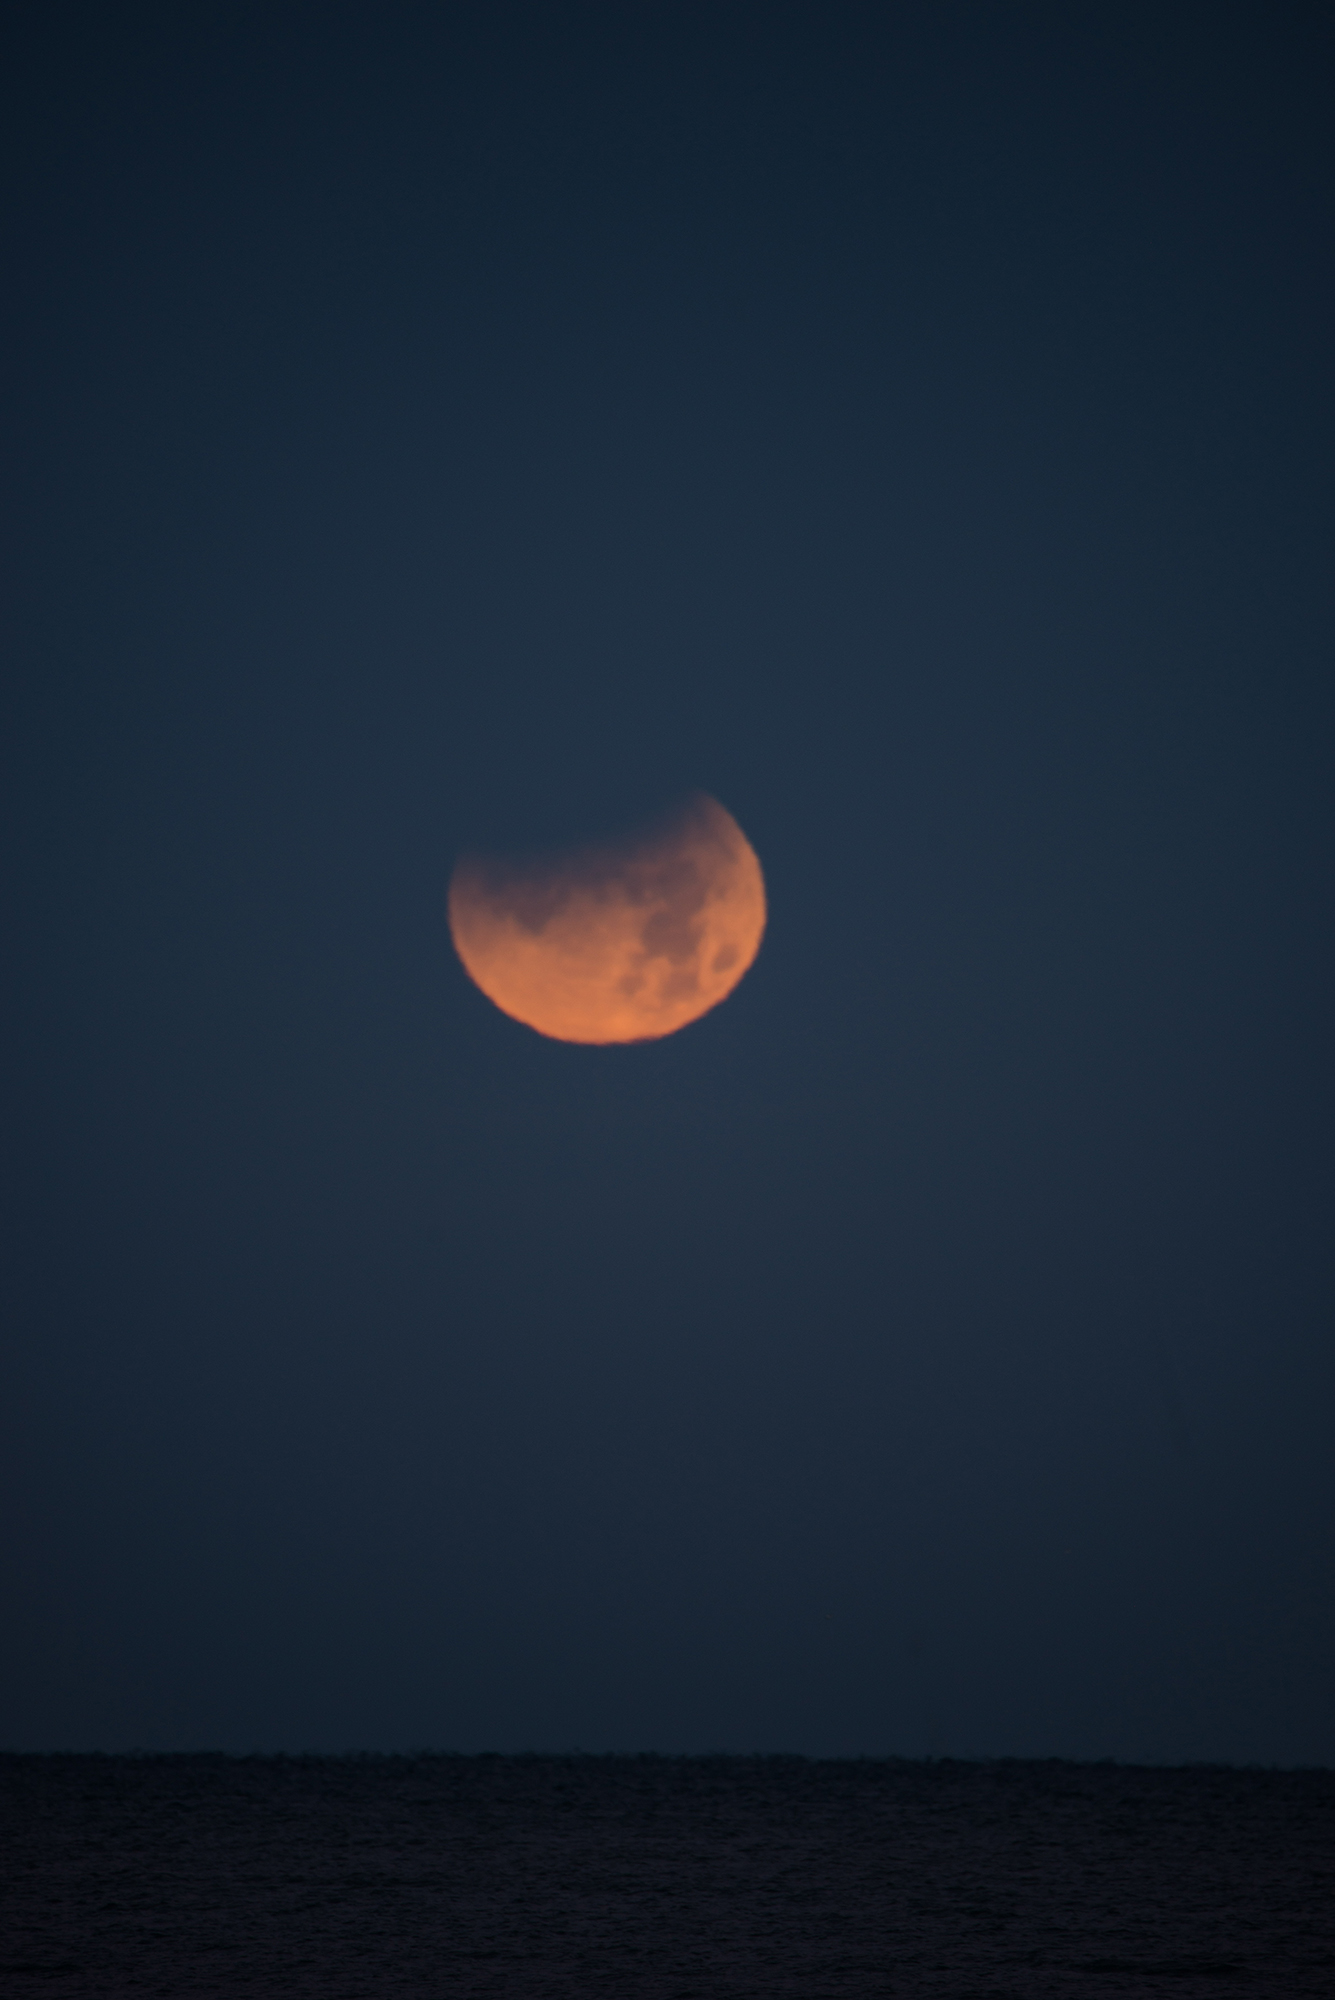 #moon, #eclipse, #moonset, #bluemoon, #supermoon, #lunareclipse, #naples, #photography, #astrophotography, #tamron, #nikon